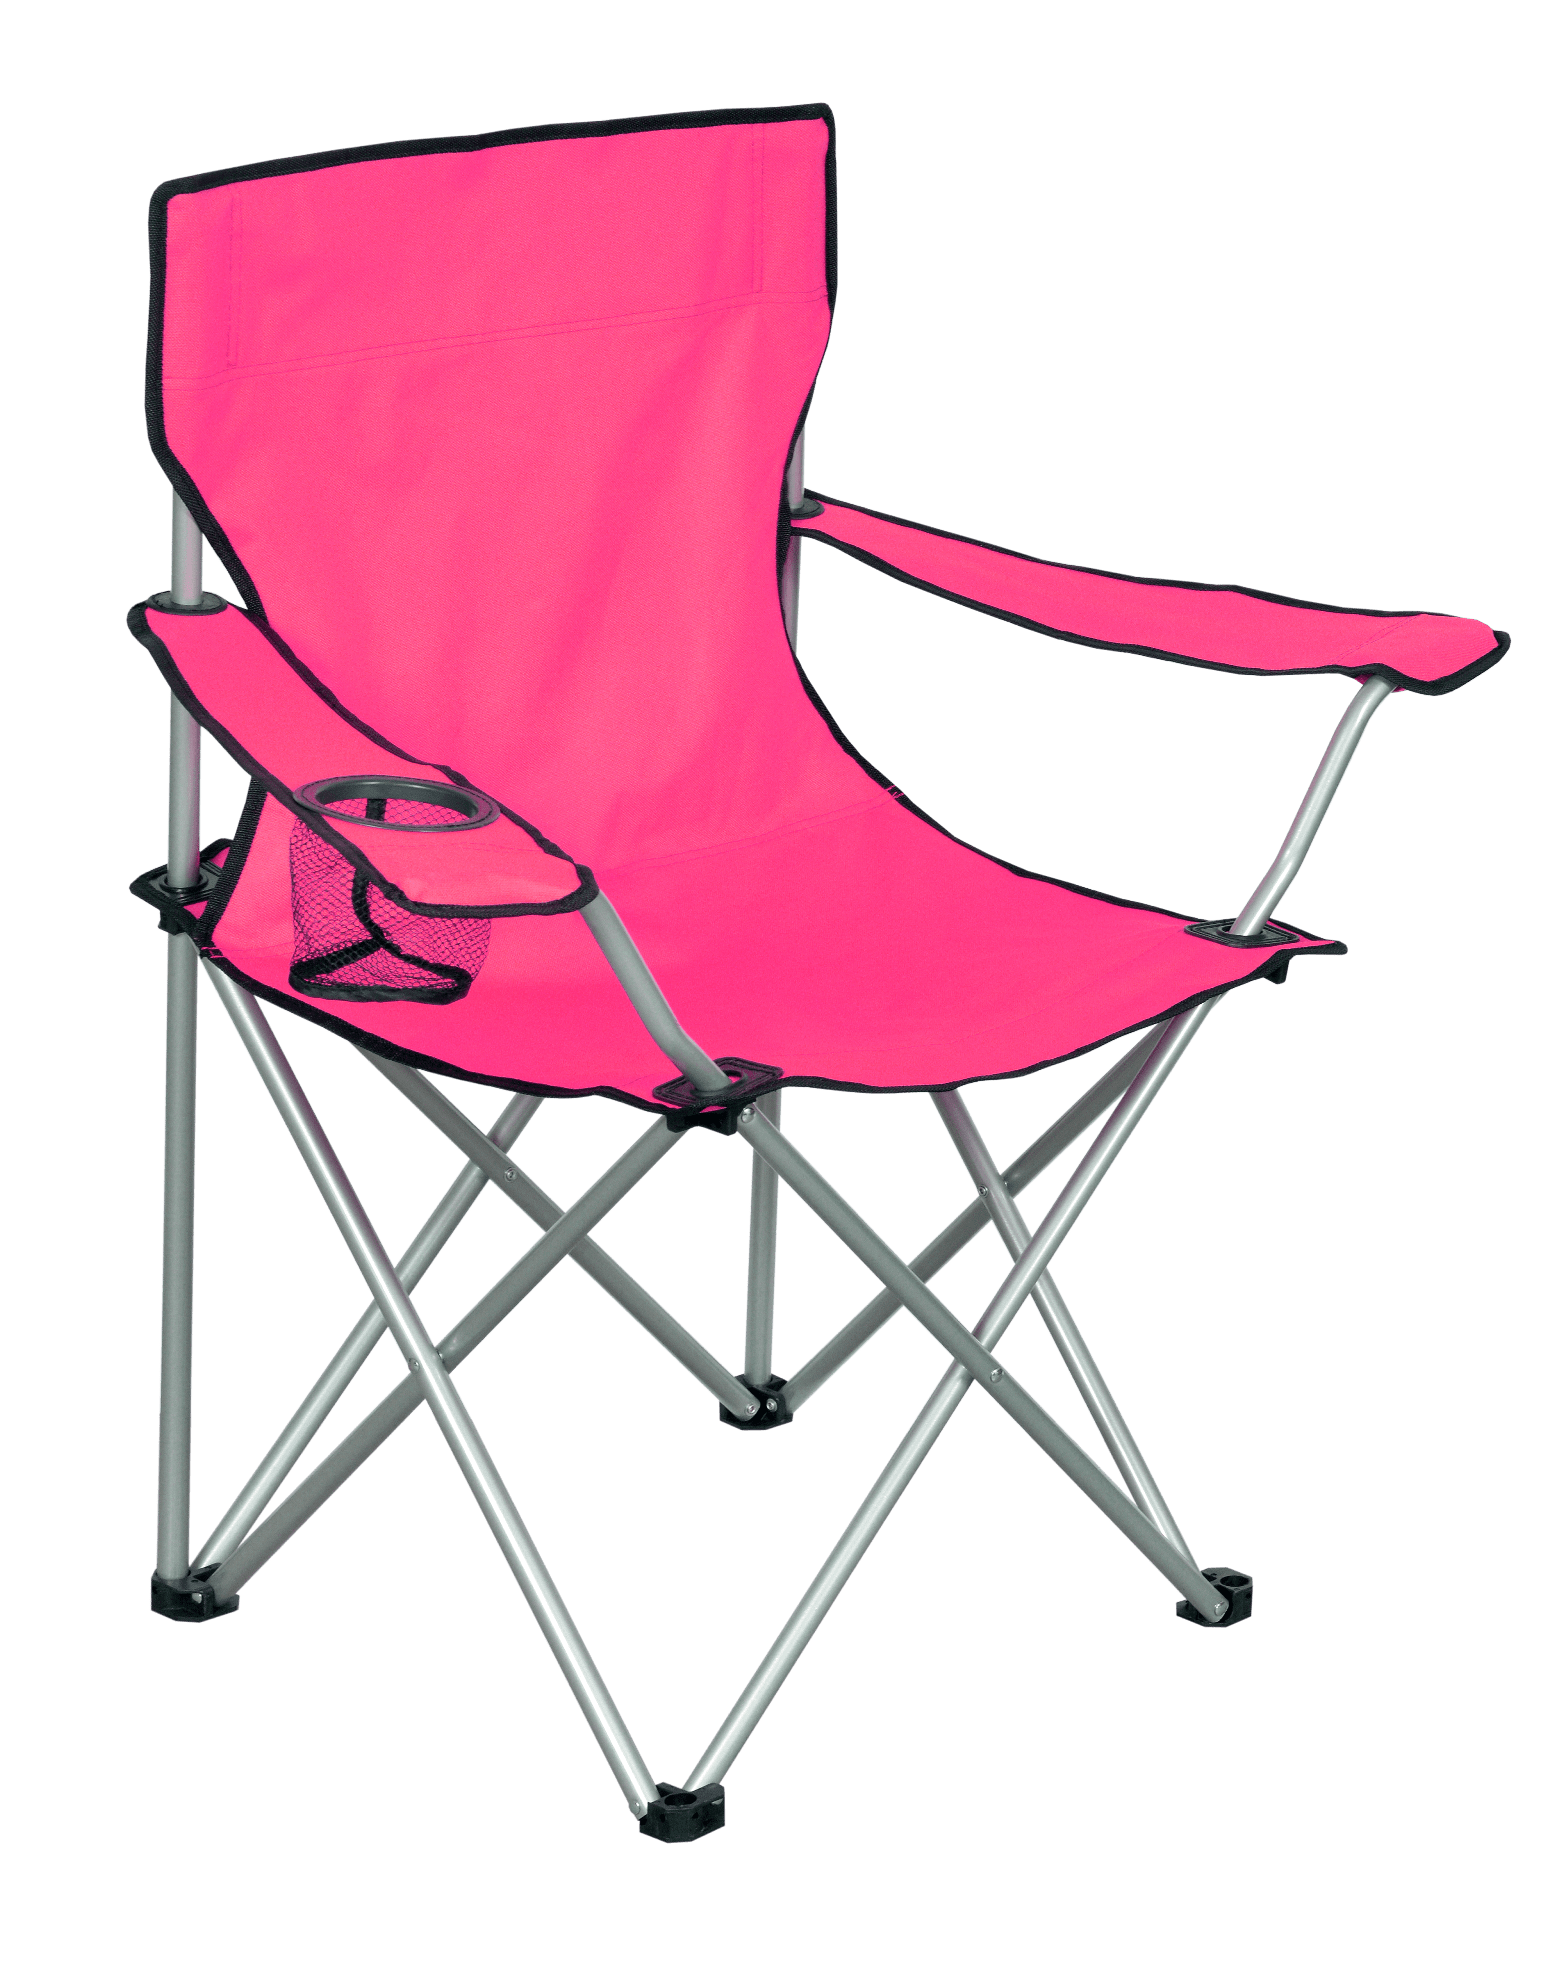 pink folding chair cover rental malaysia northwest territory lightweight sports bright